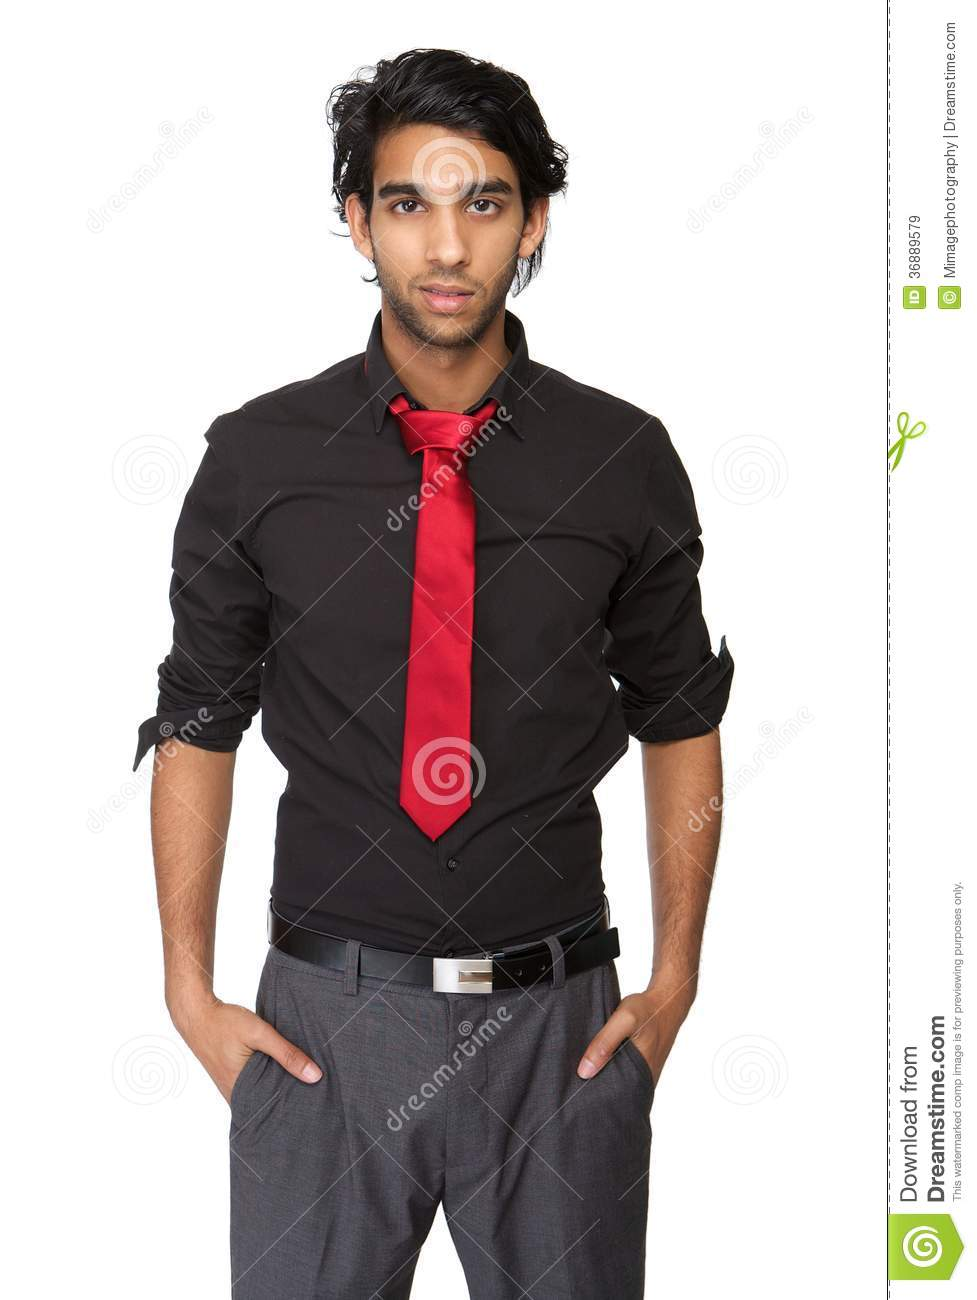 Portrait Of A Trendy Young Man In Black Shirt And Tie Royalty Free ...